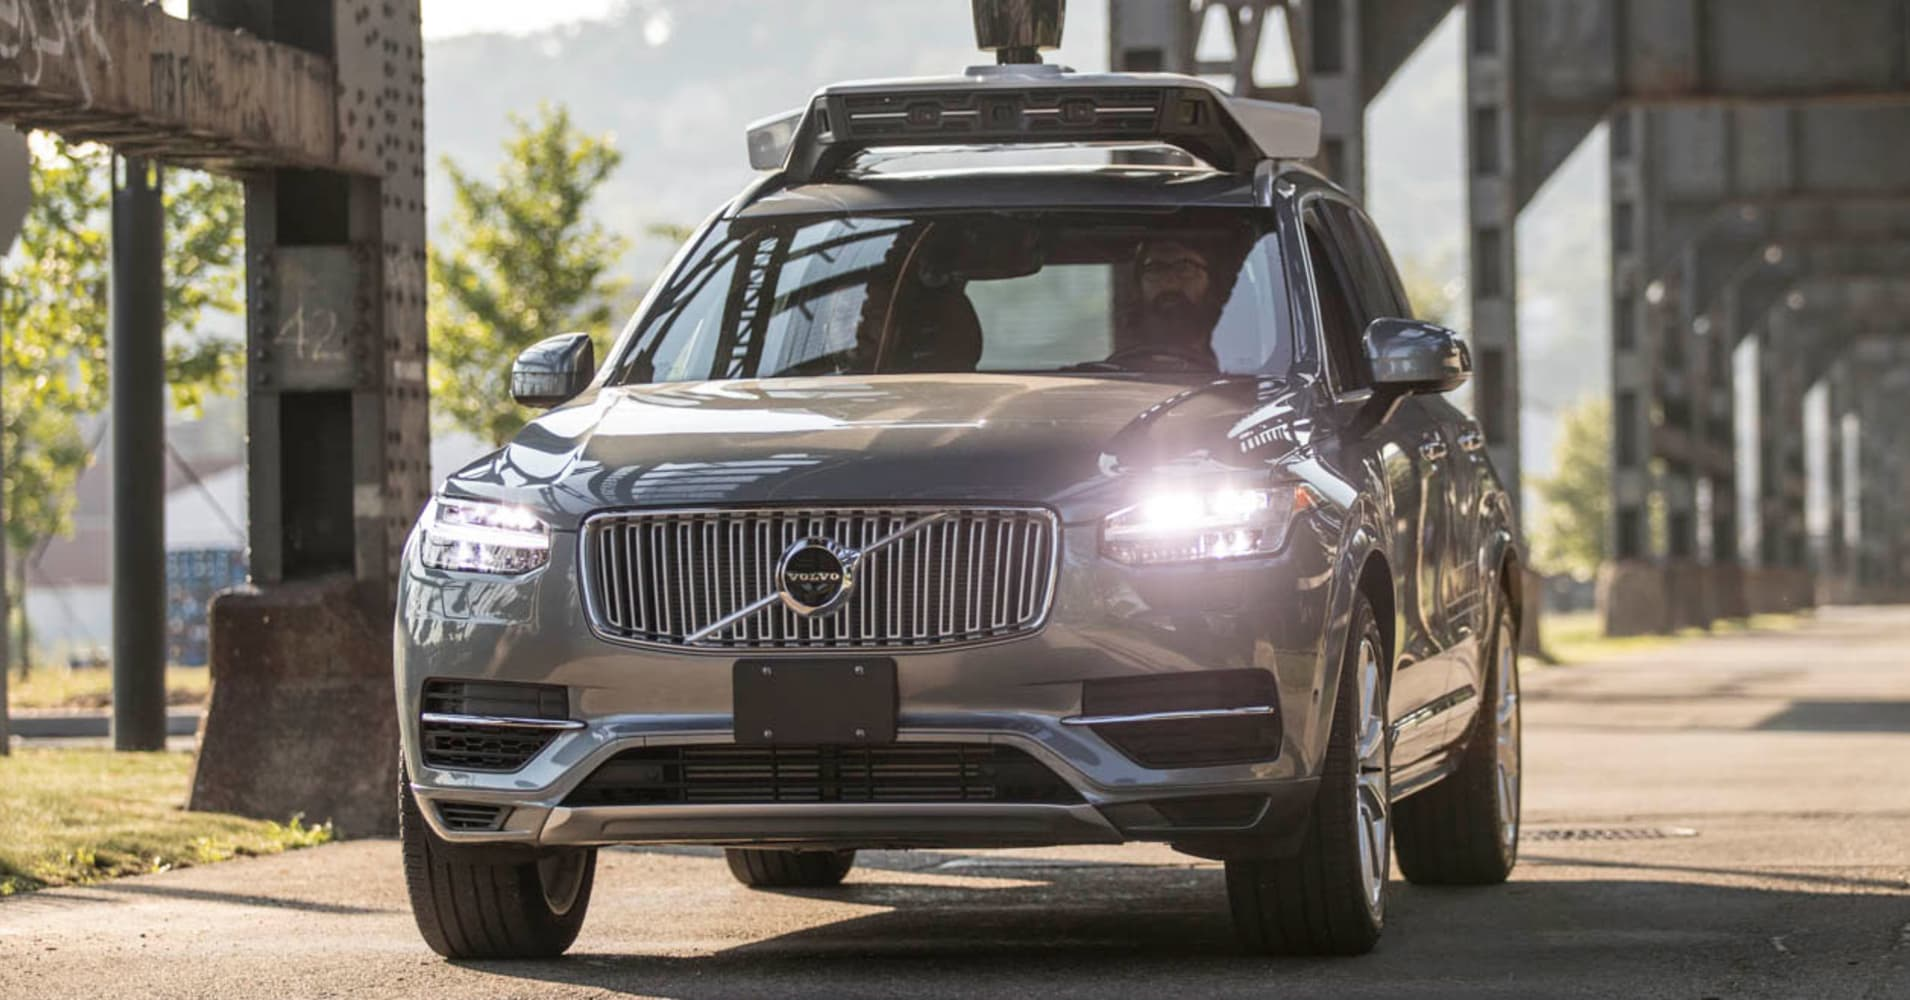 Uber's self-driving cars are back on the road, nine months after a fatal accident